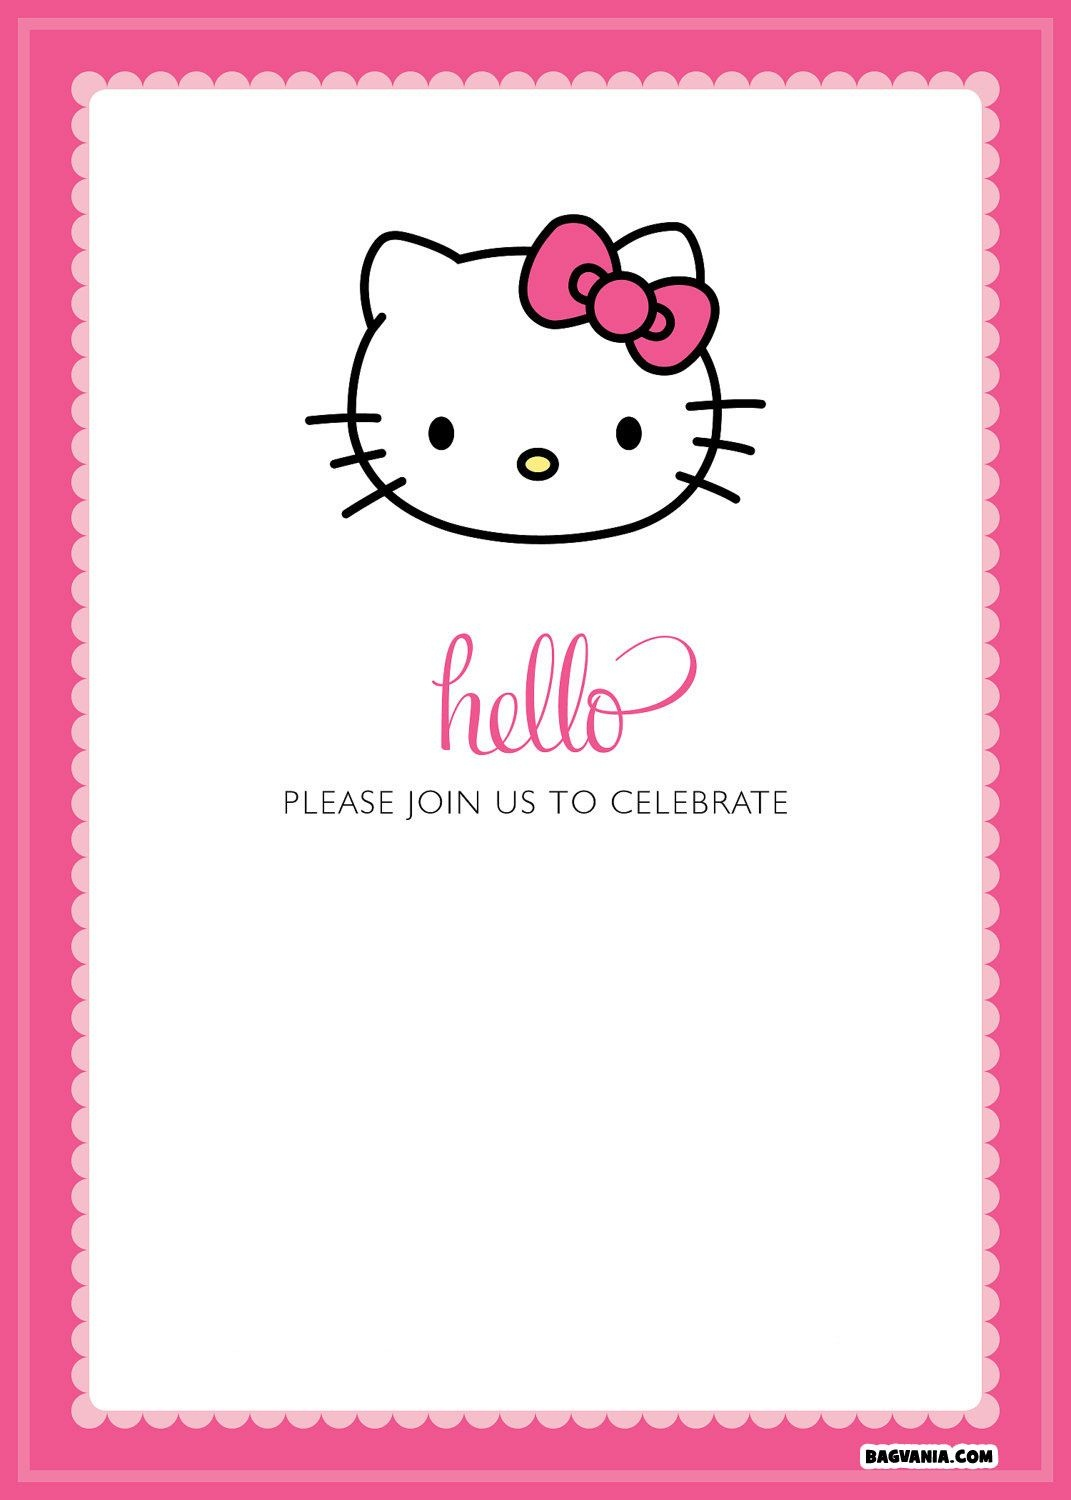 Free Printable Hello Kitty Birthday Invitations – Bagvania Free - Free Printable Hello Kitty Baby Shower Invitations